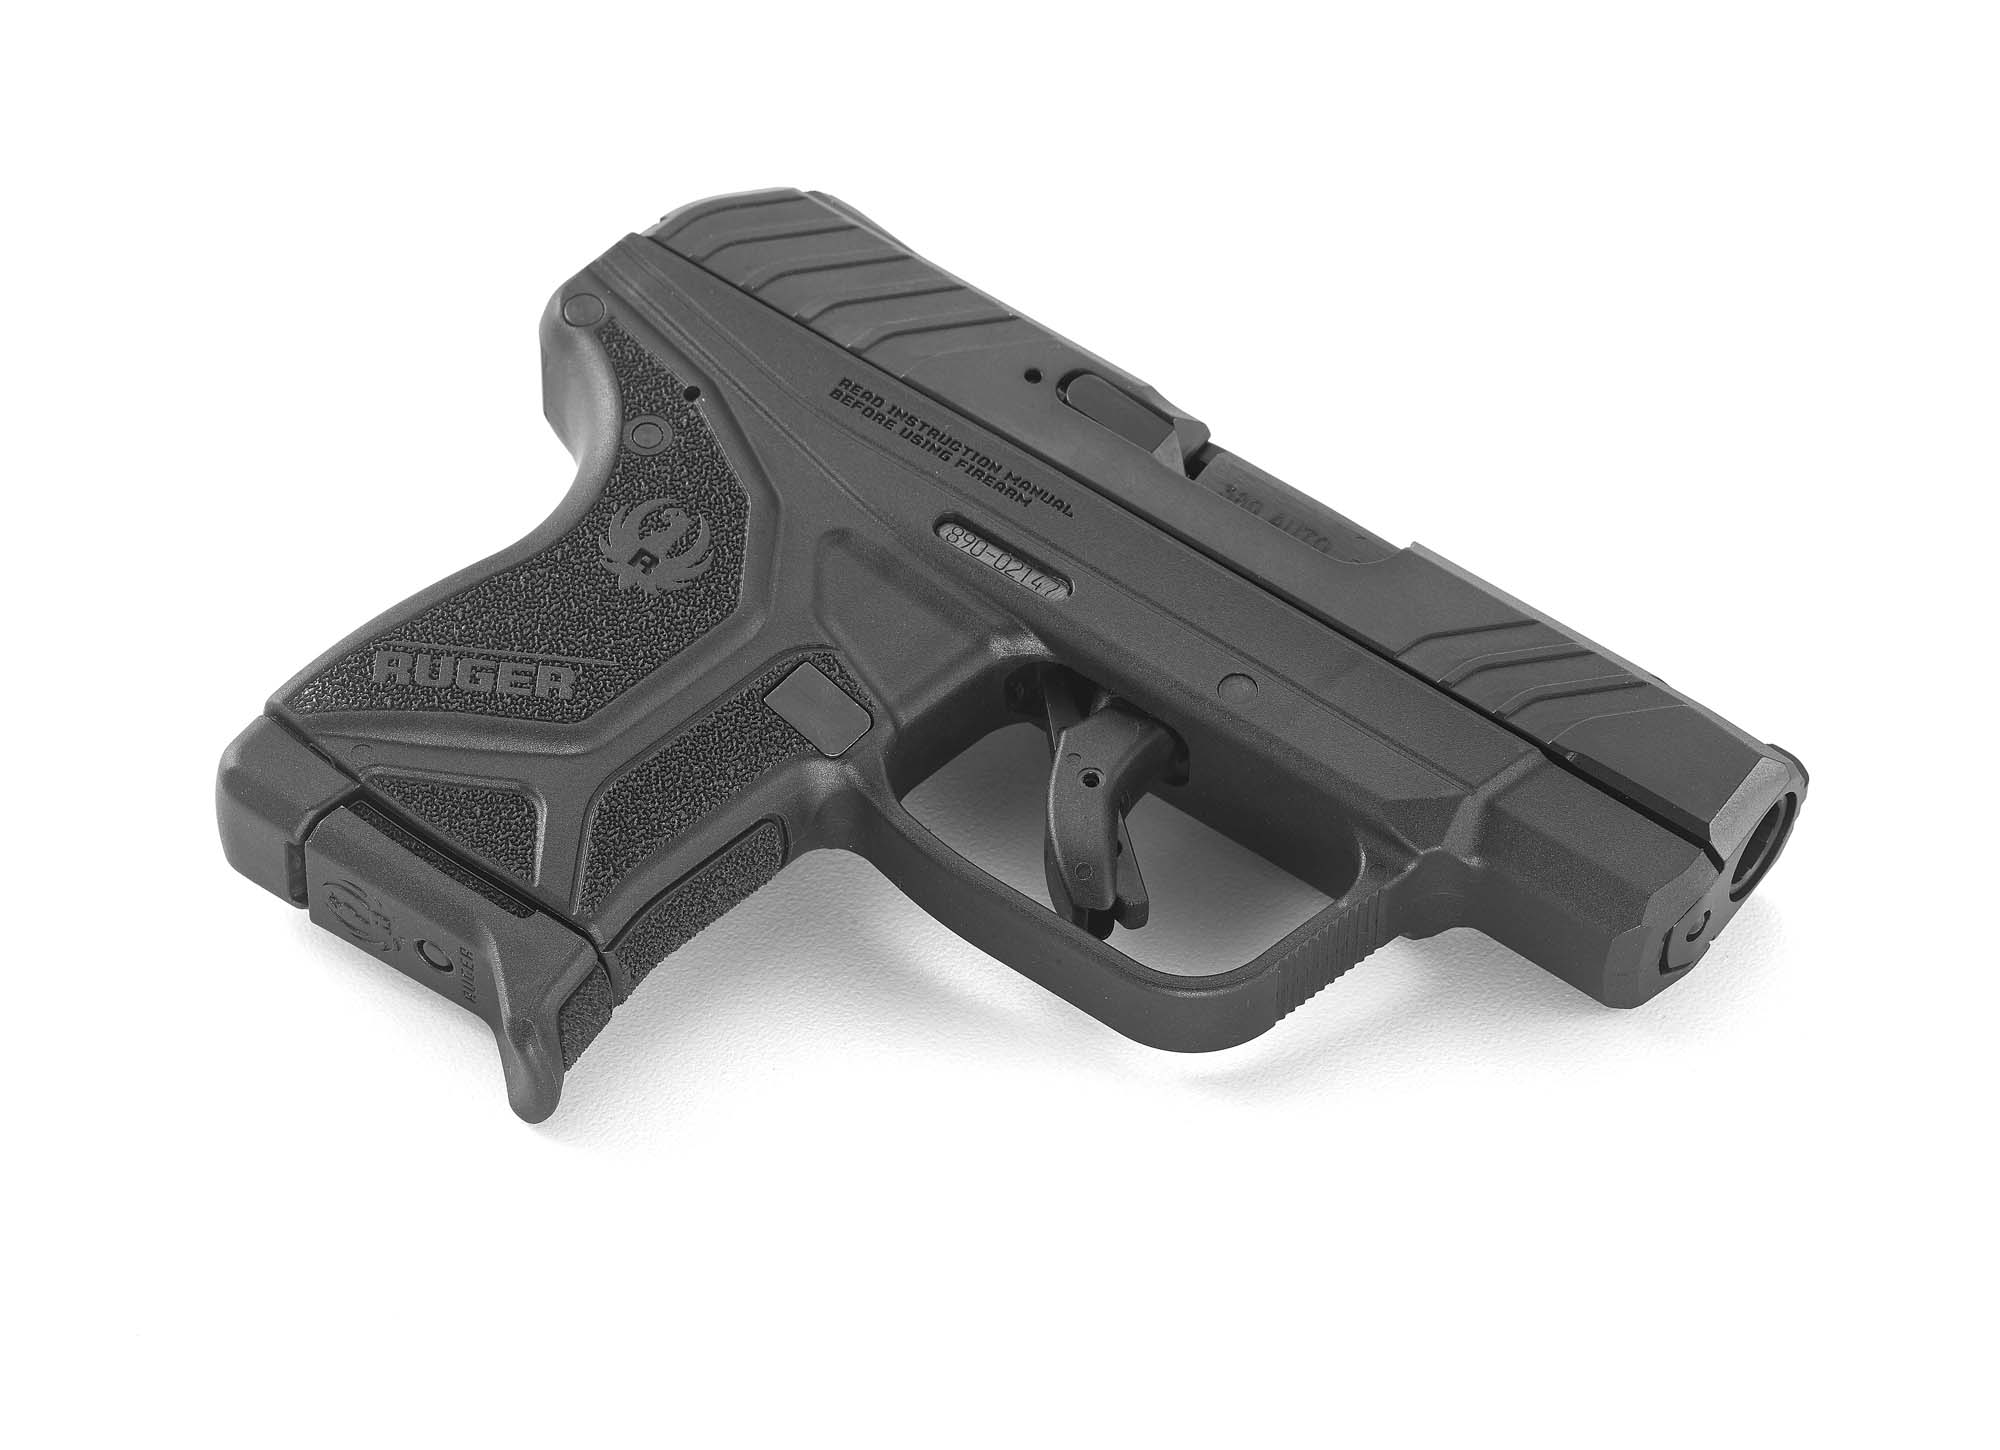 ruger firearms introduces the lcp ii pocket pistol gunsweek com